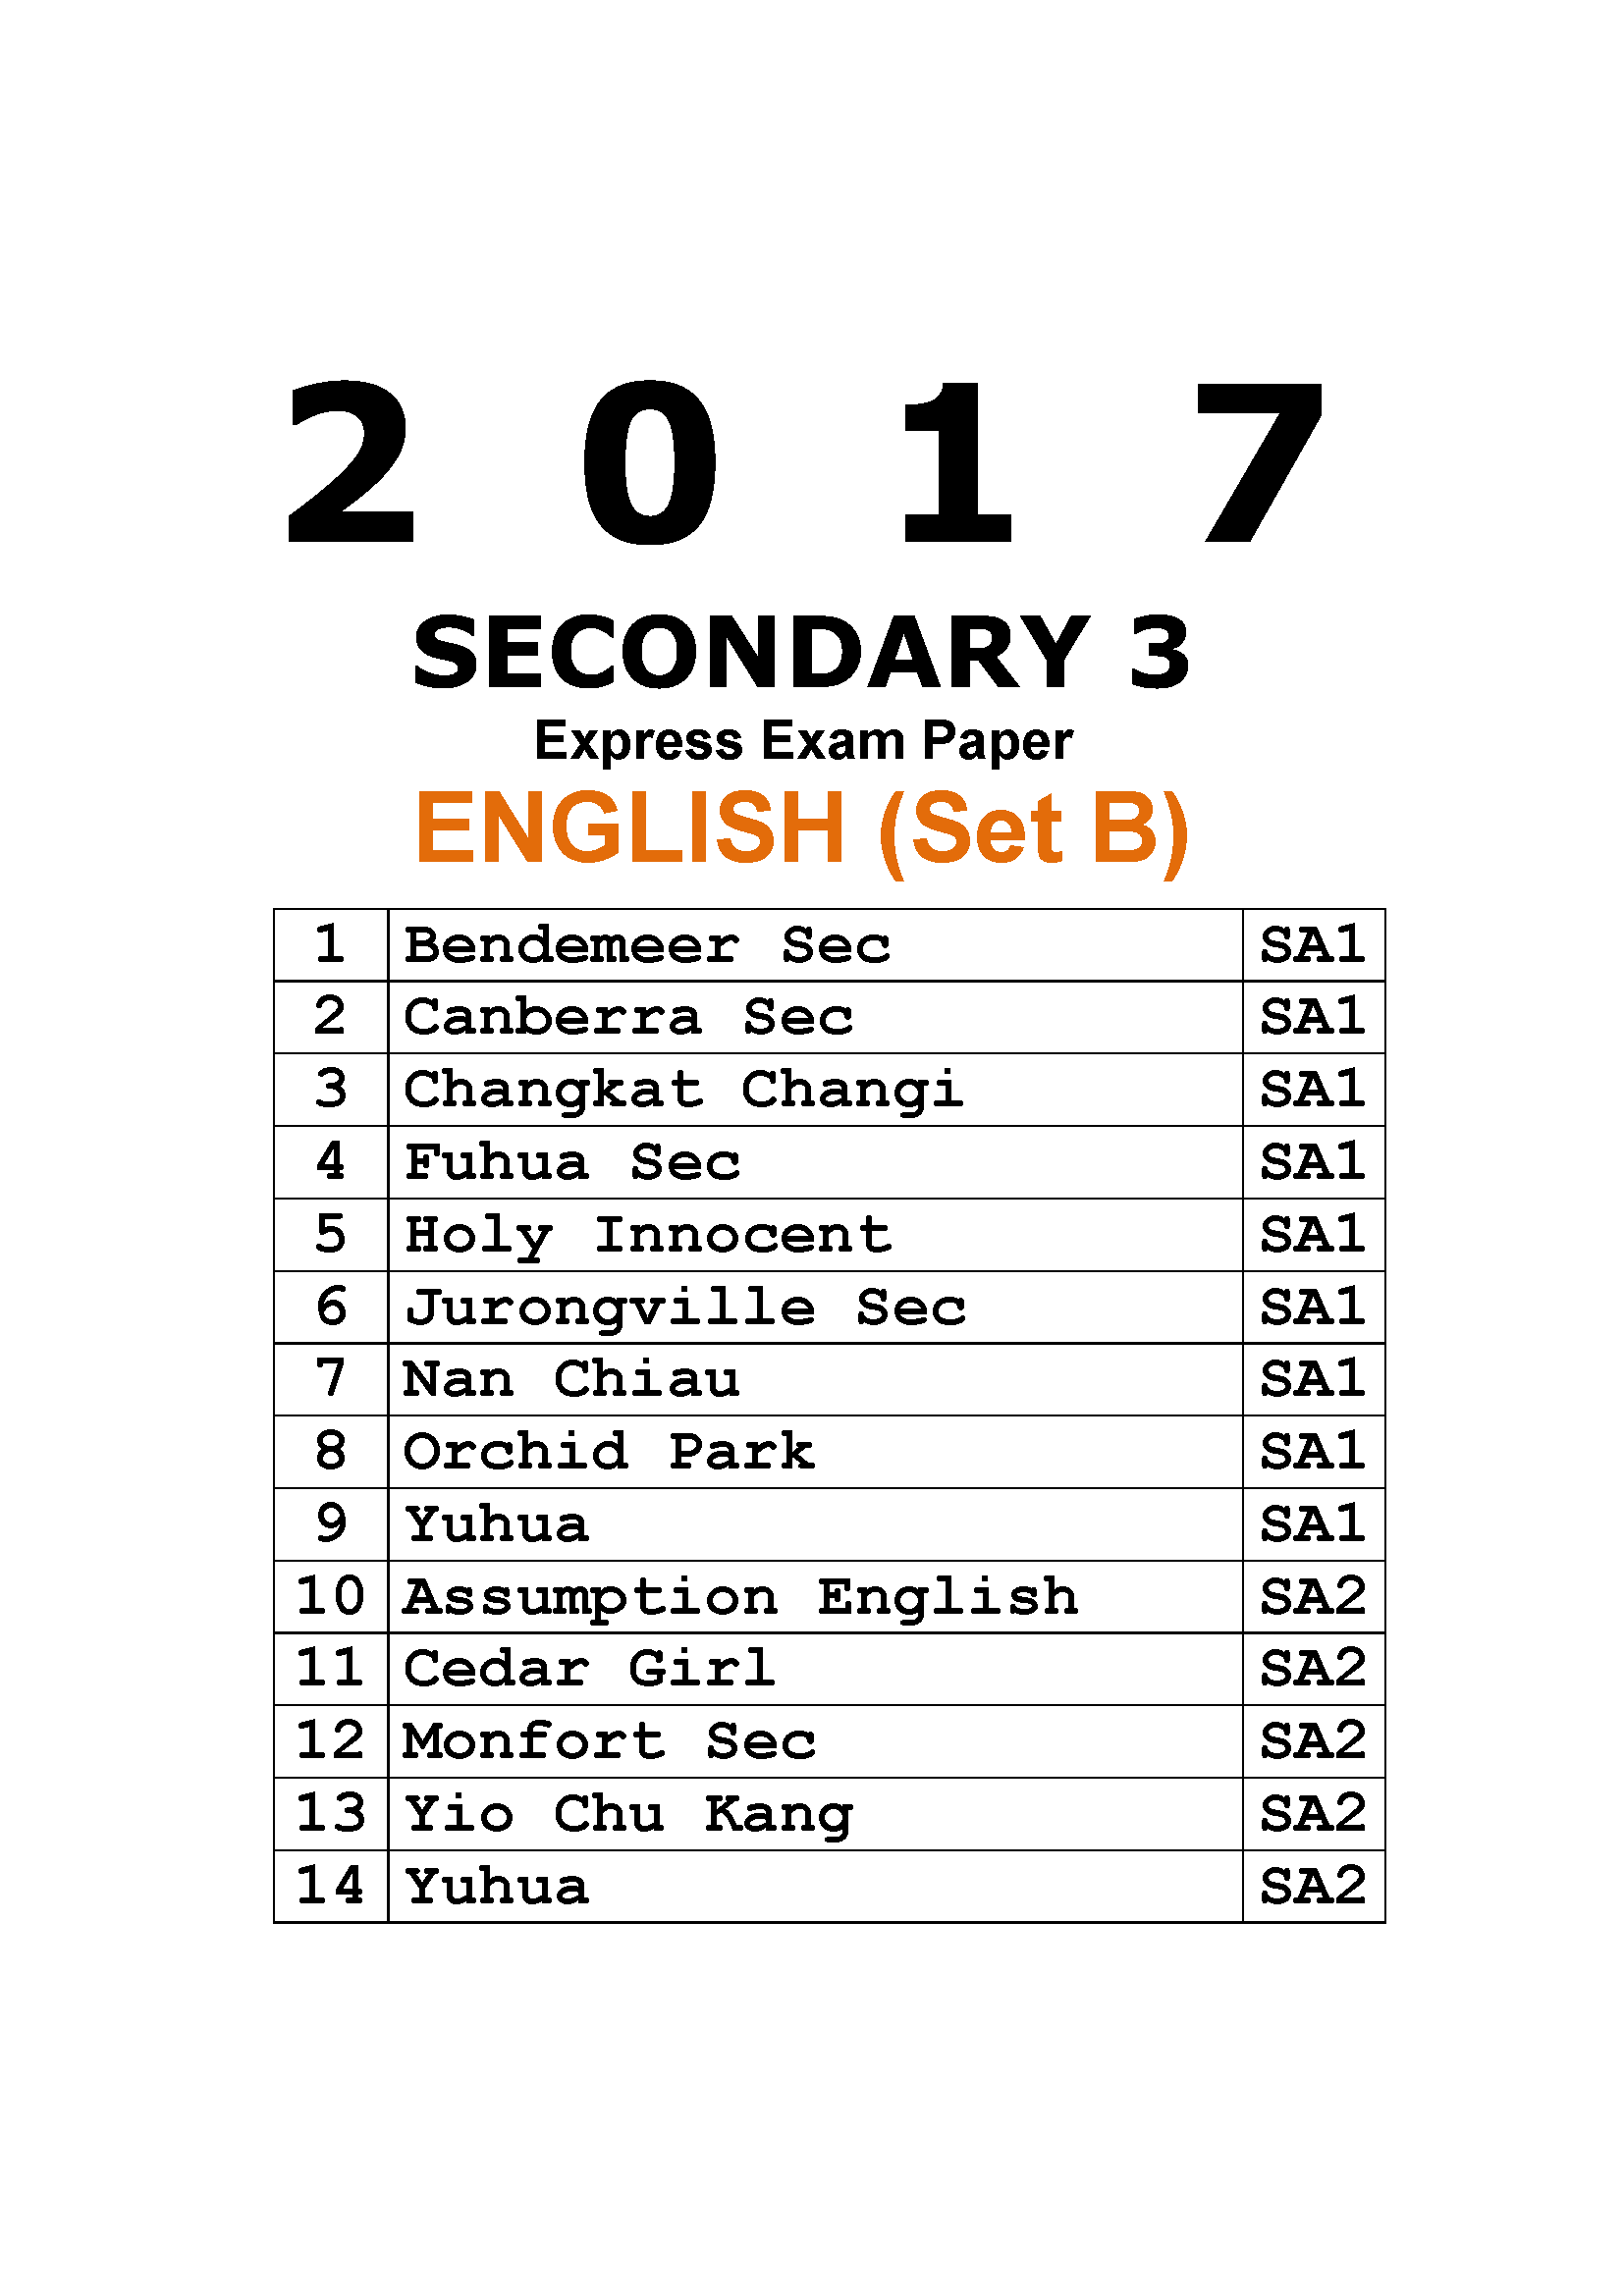 2017 Secondary 3 Express English Exam Paper (Set B